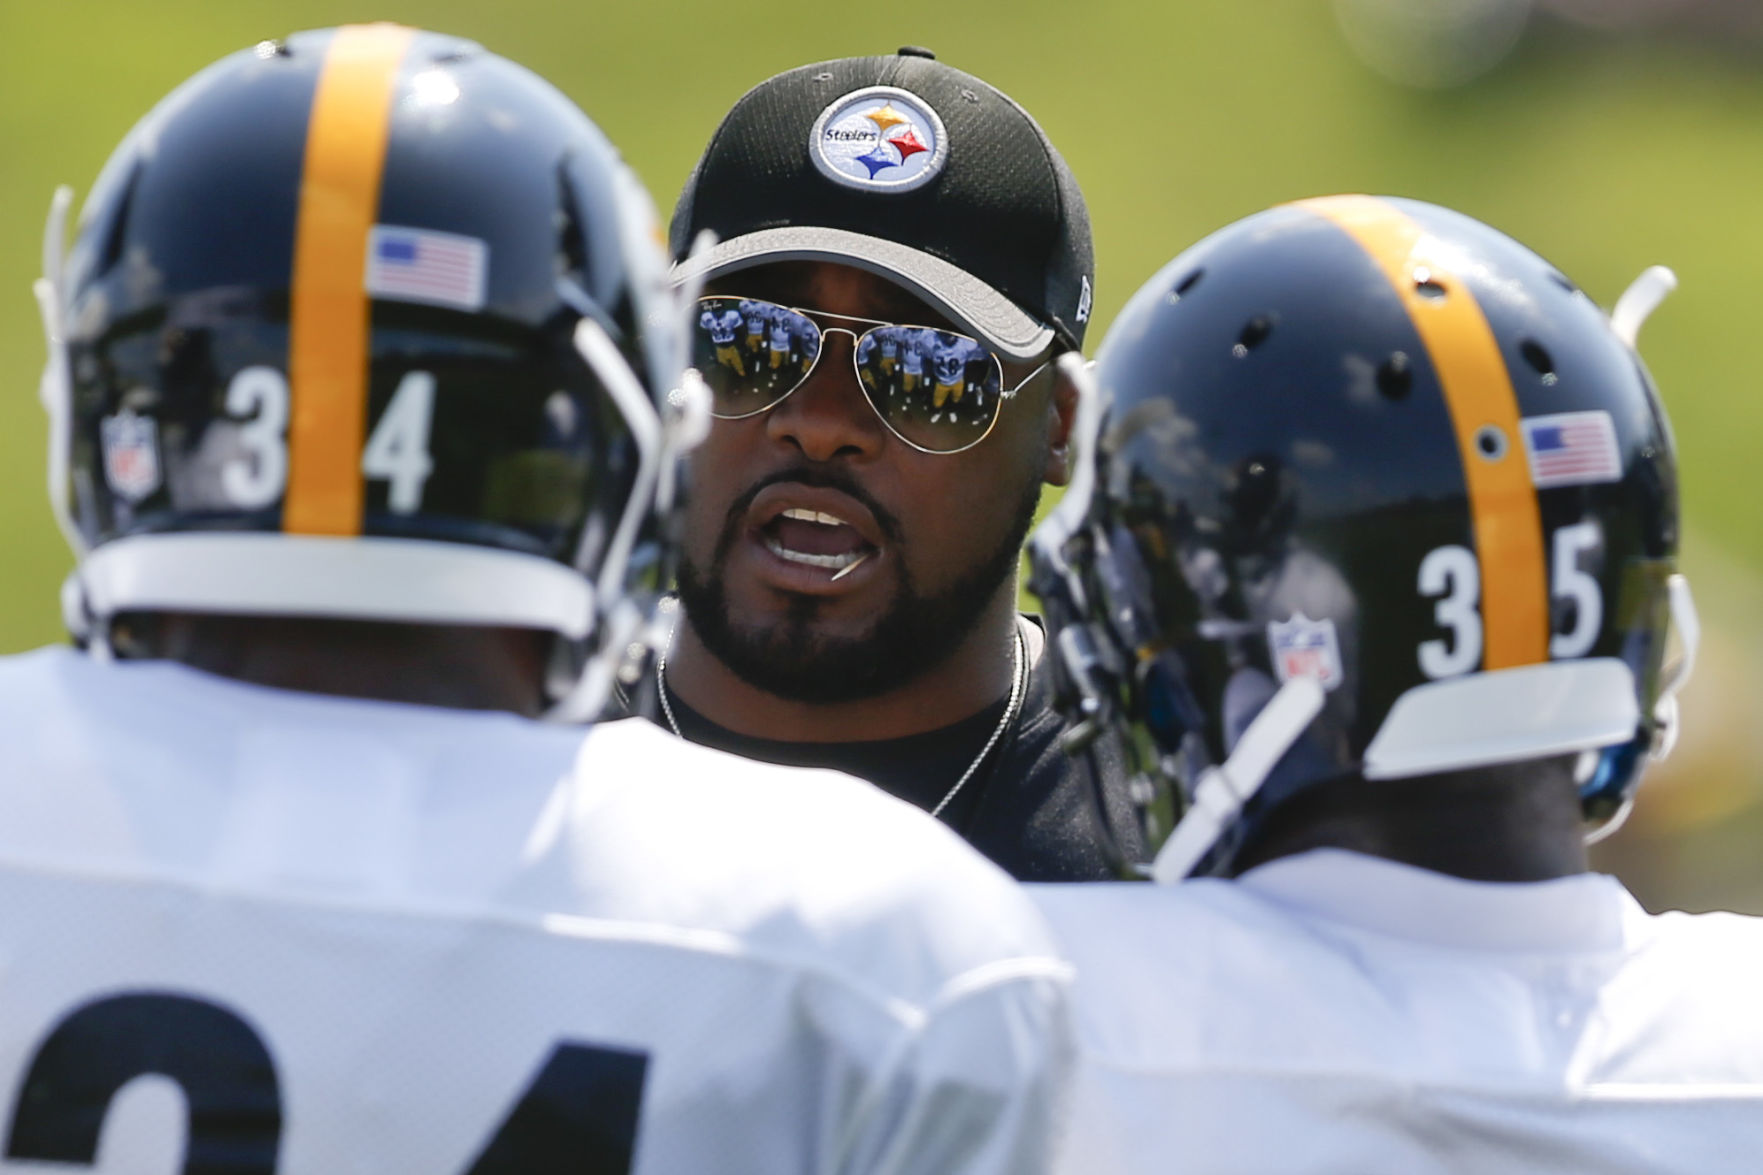 Steelers extend Mike Tomlin through 2020